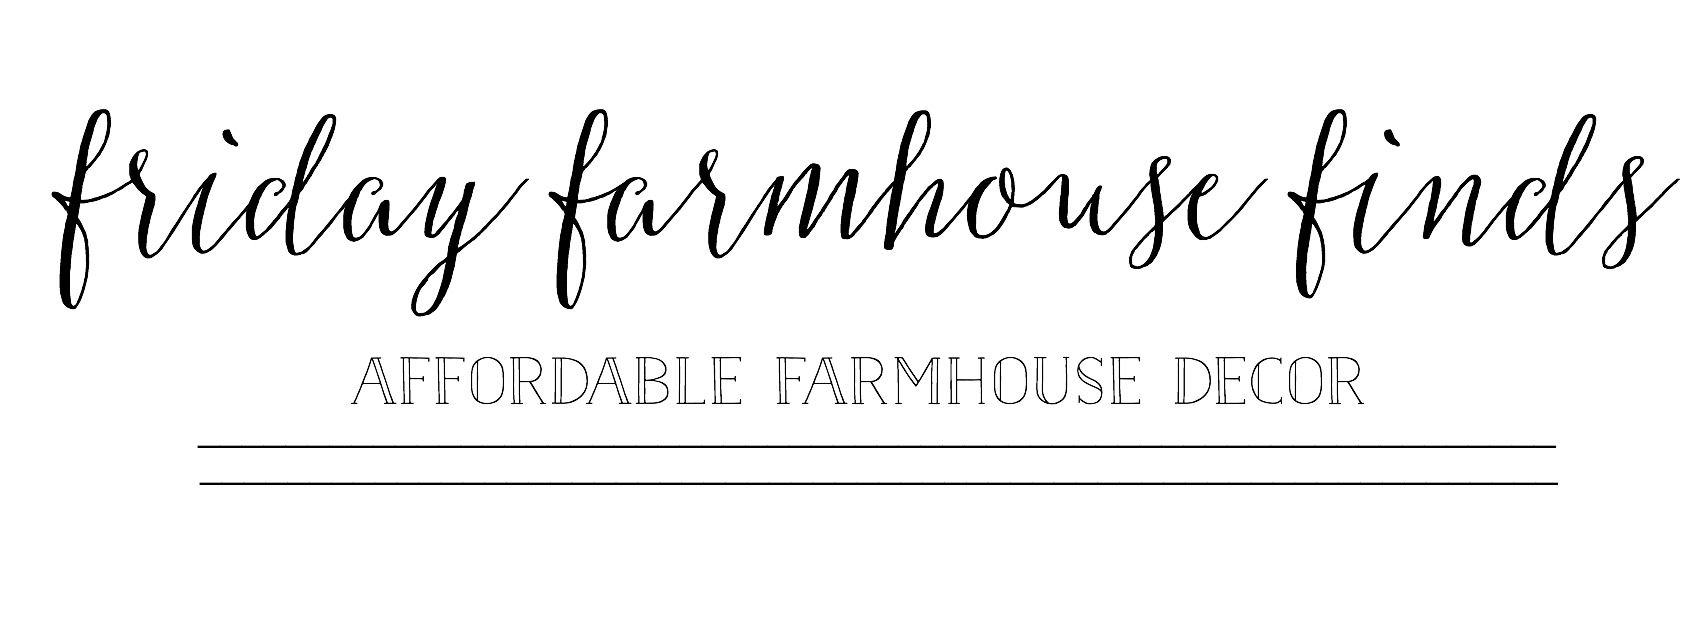 Farmhouse Finds Friday- Plum Pretty Decor and Design Shares The Very Best In Affordable Farmhouse Decor